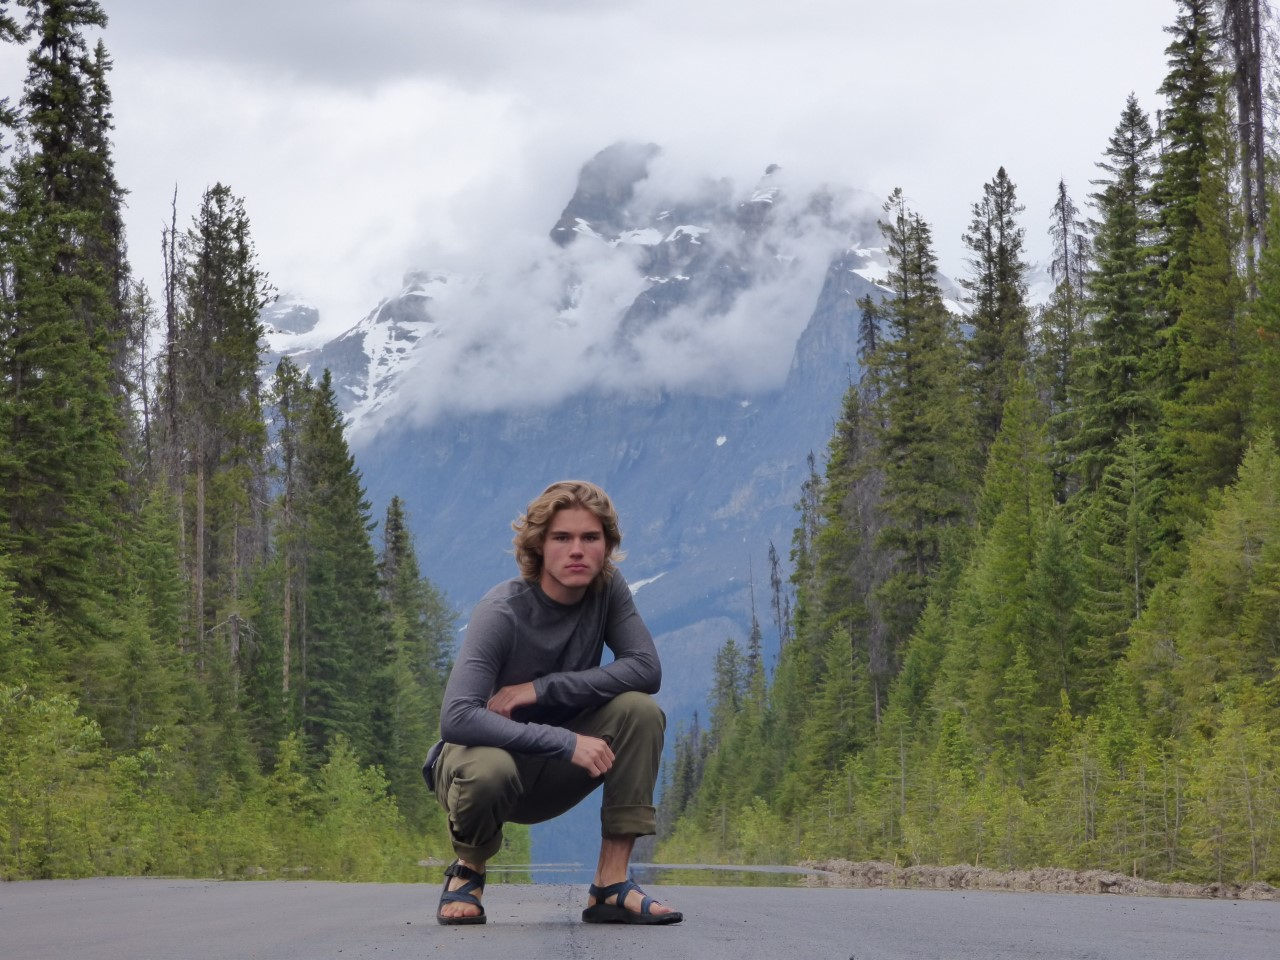 tom on road with mountain background